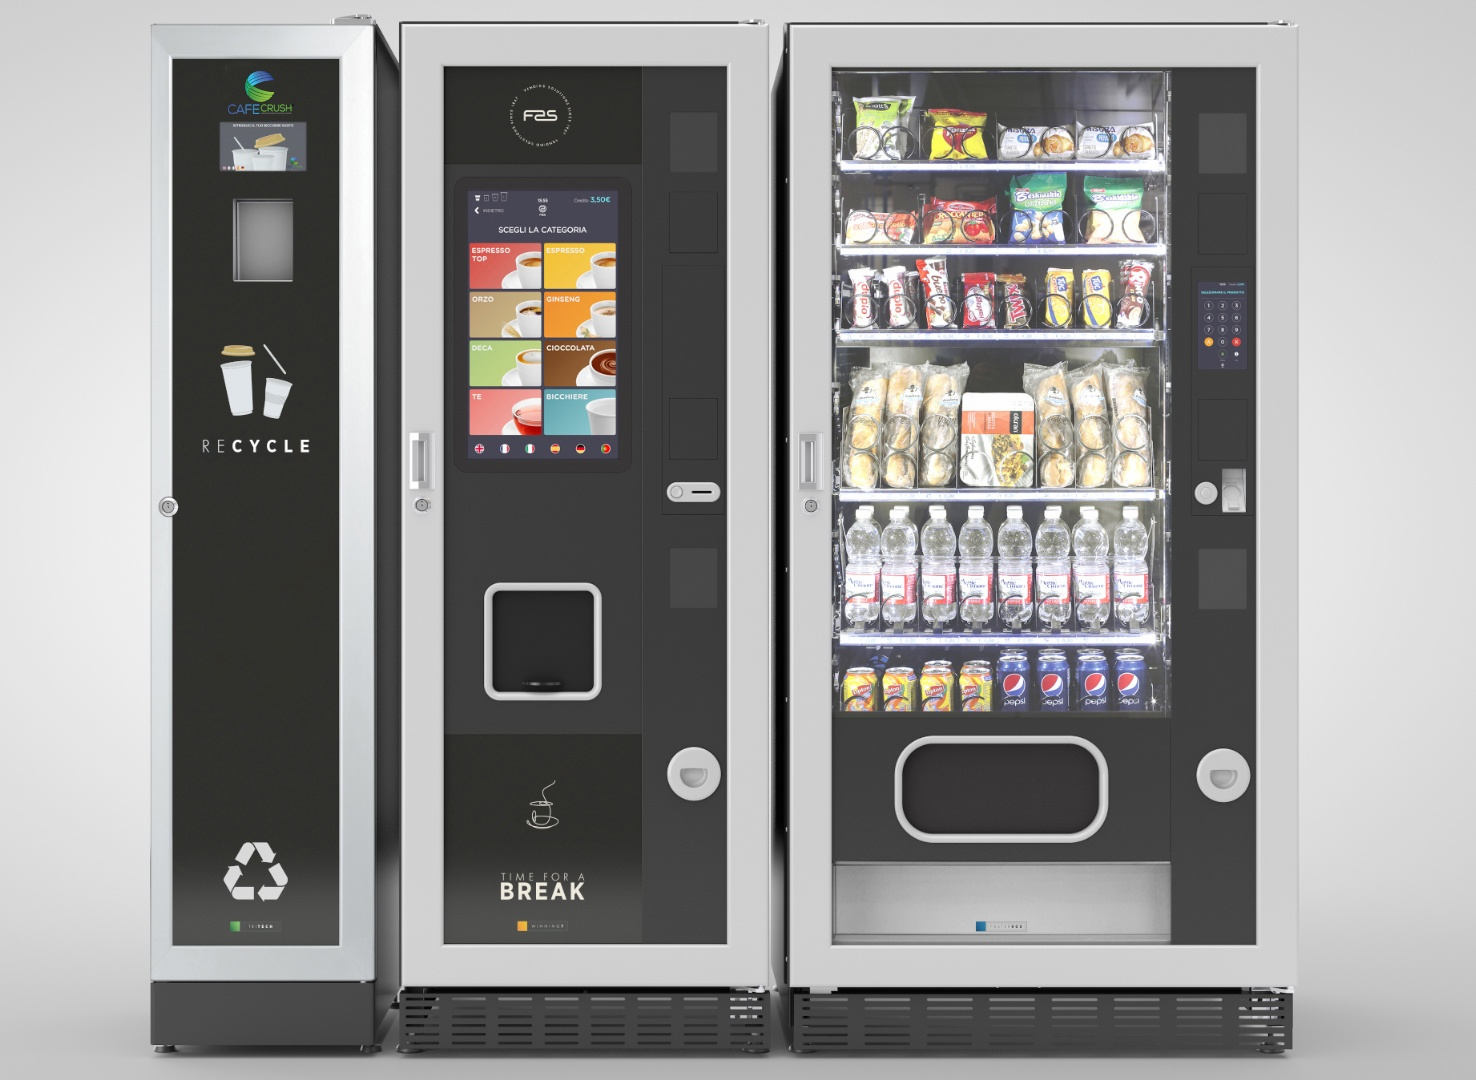 CafeCrush bottle deposit return machine